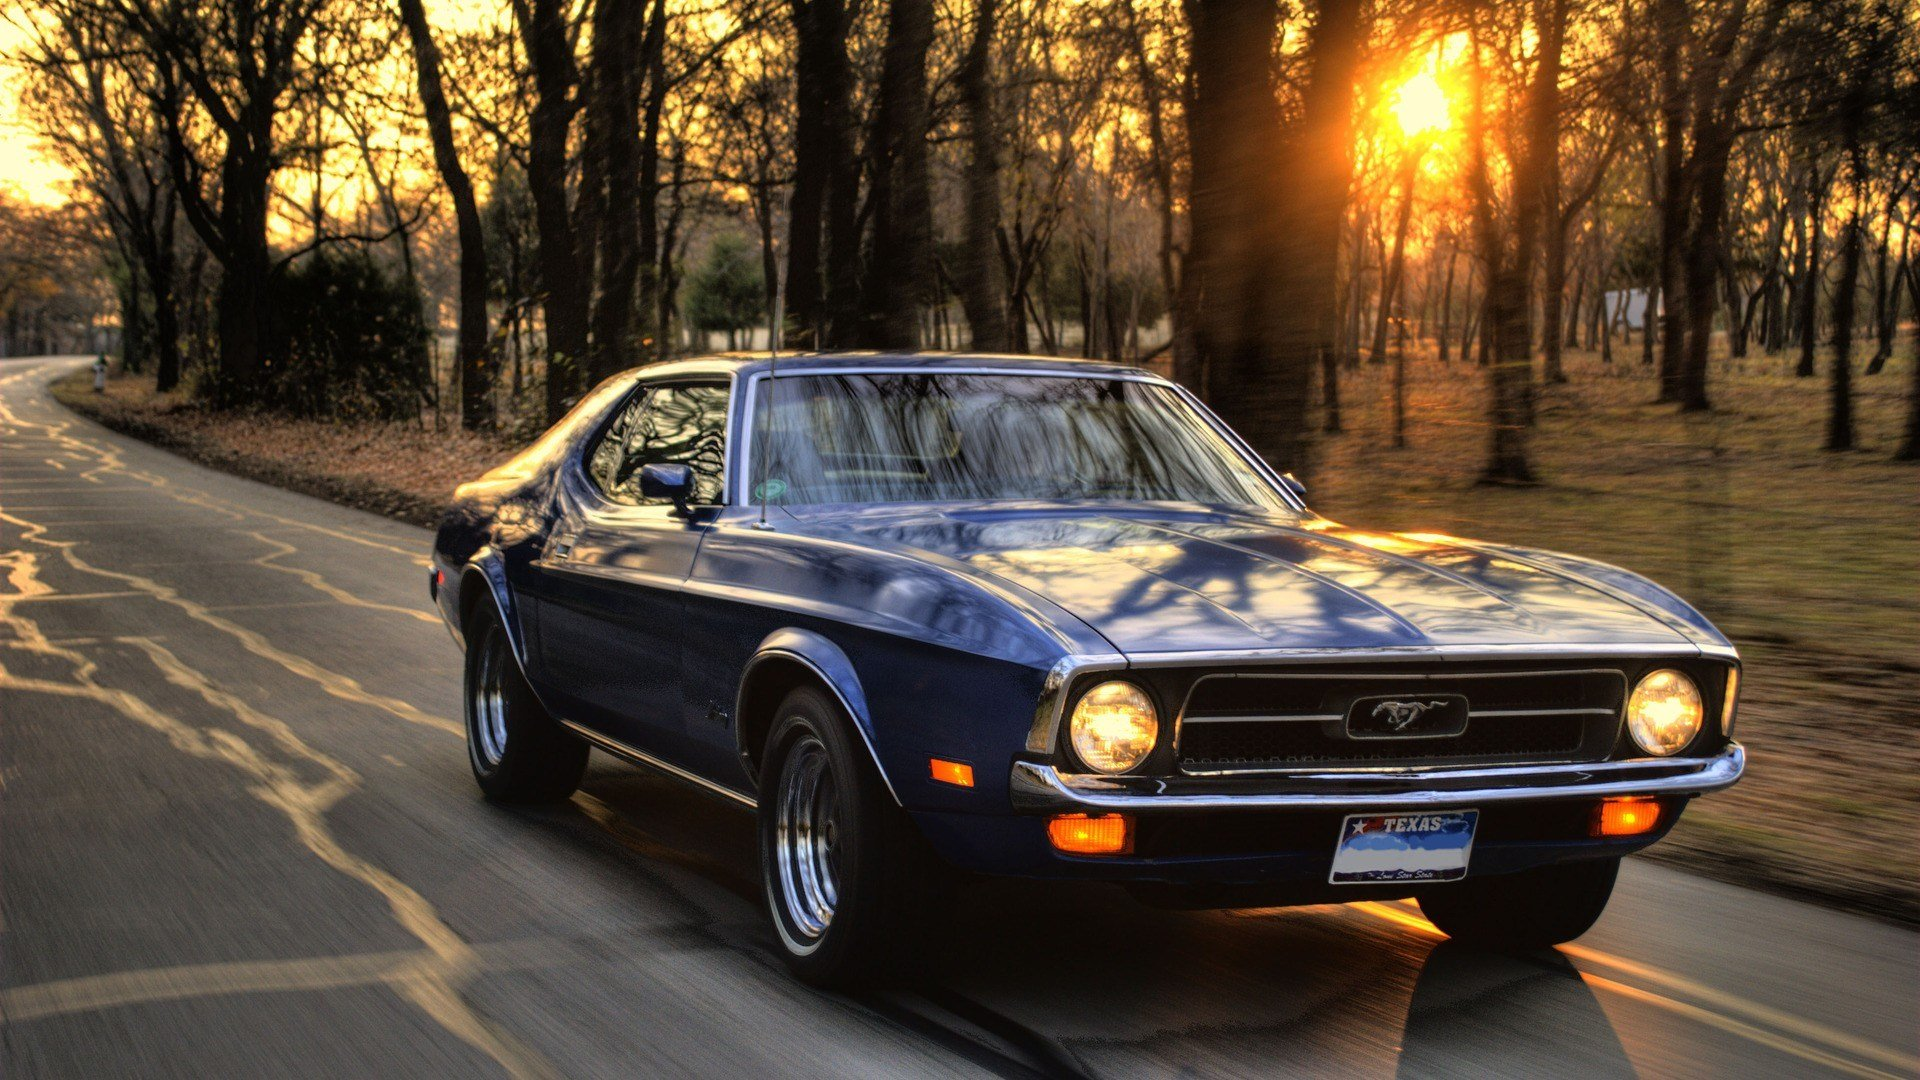 Latest Car Ford Ford Mustang Sunset Trees Road Muscle Cars Free Download